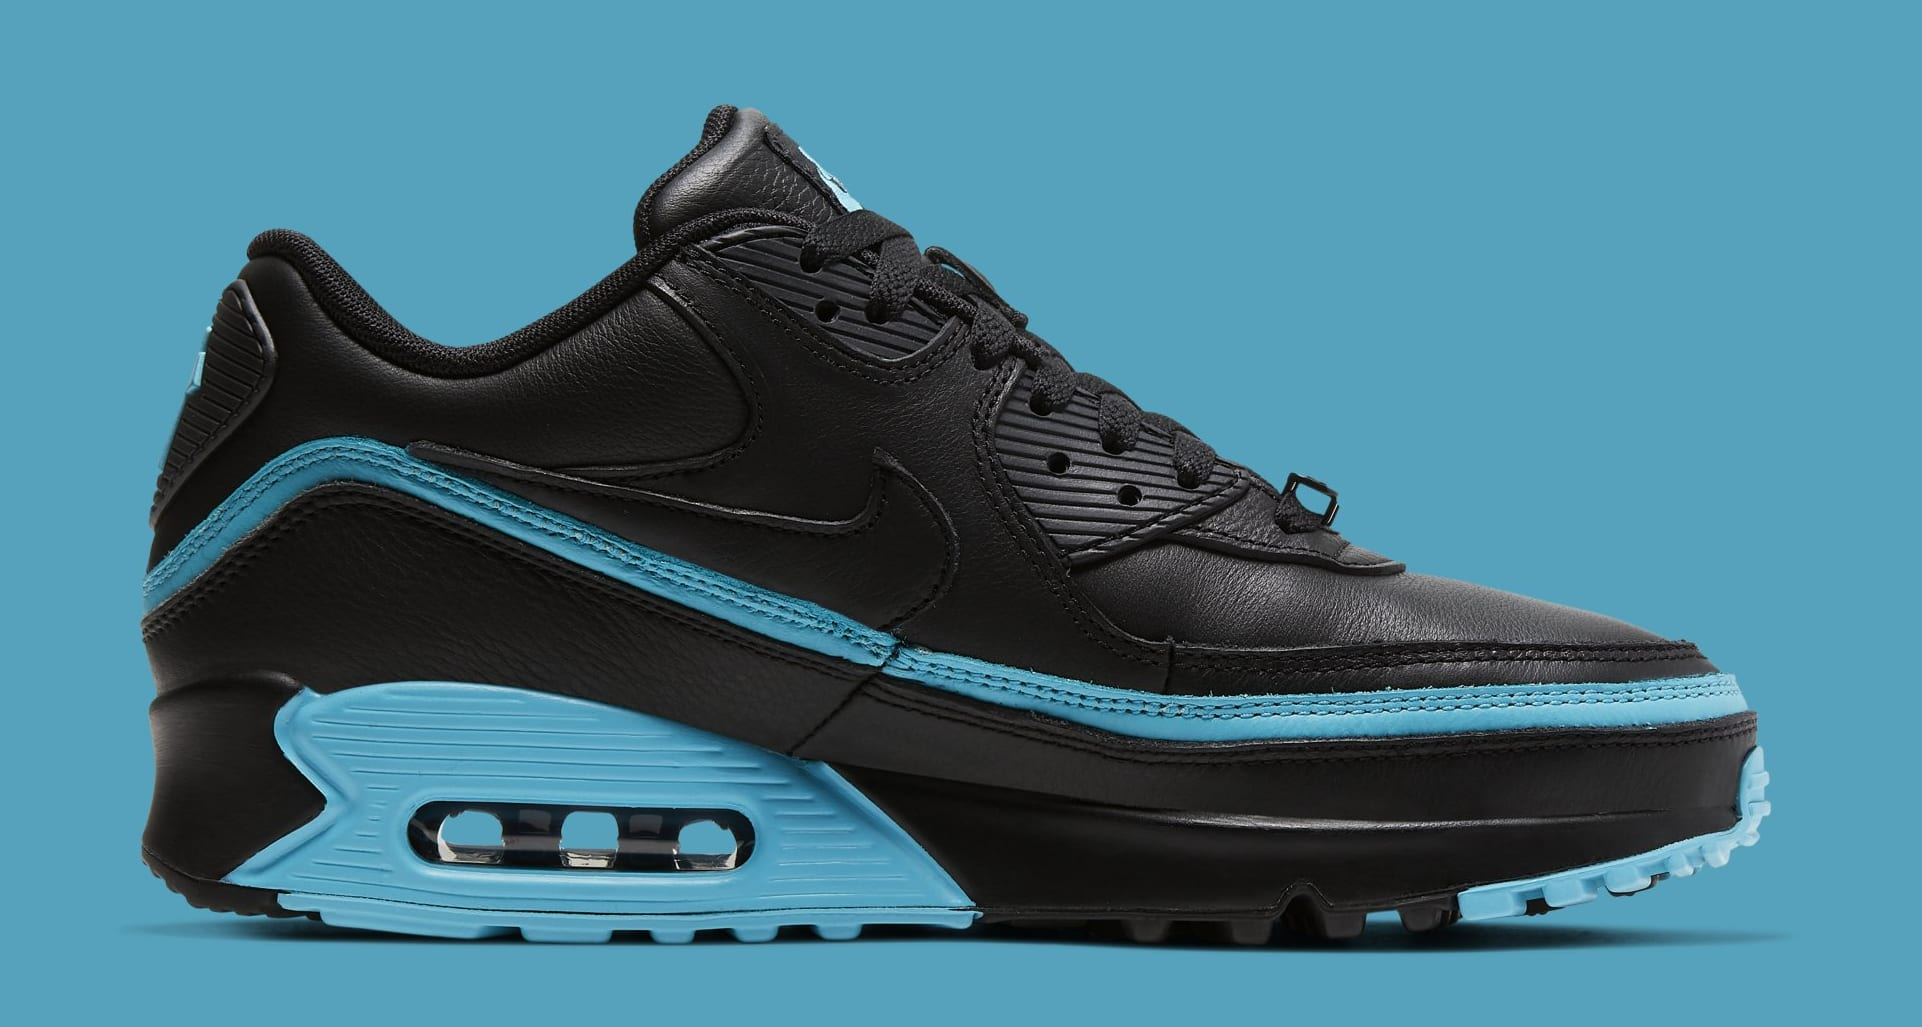 undefeated-nike-air-max-90-black-blue-fury-cj7197-002-medial